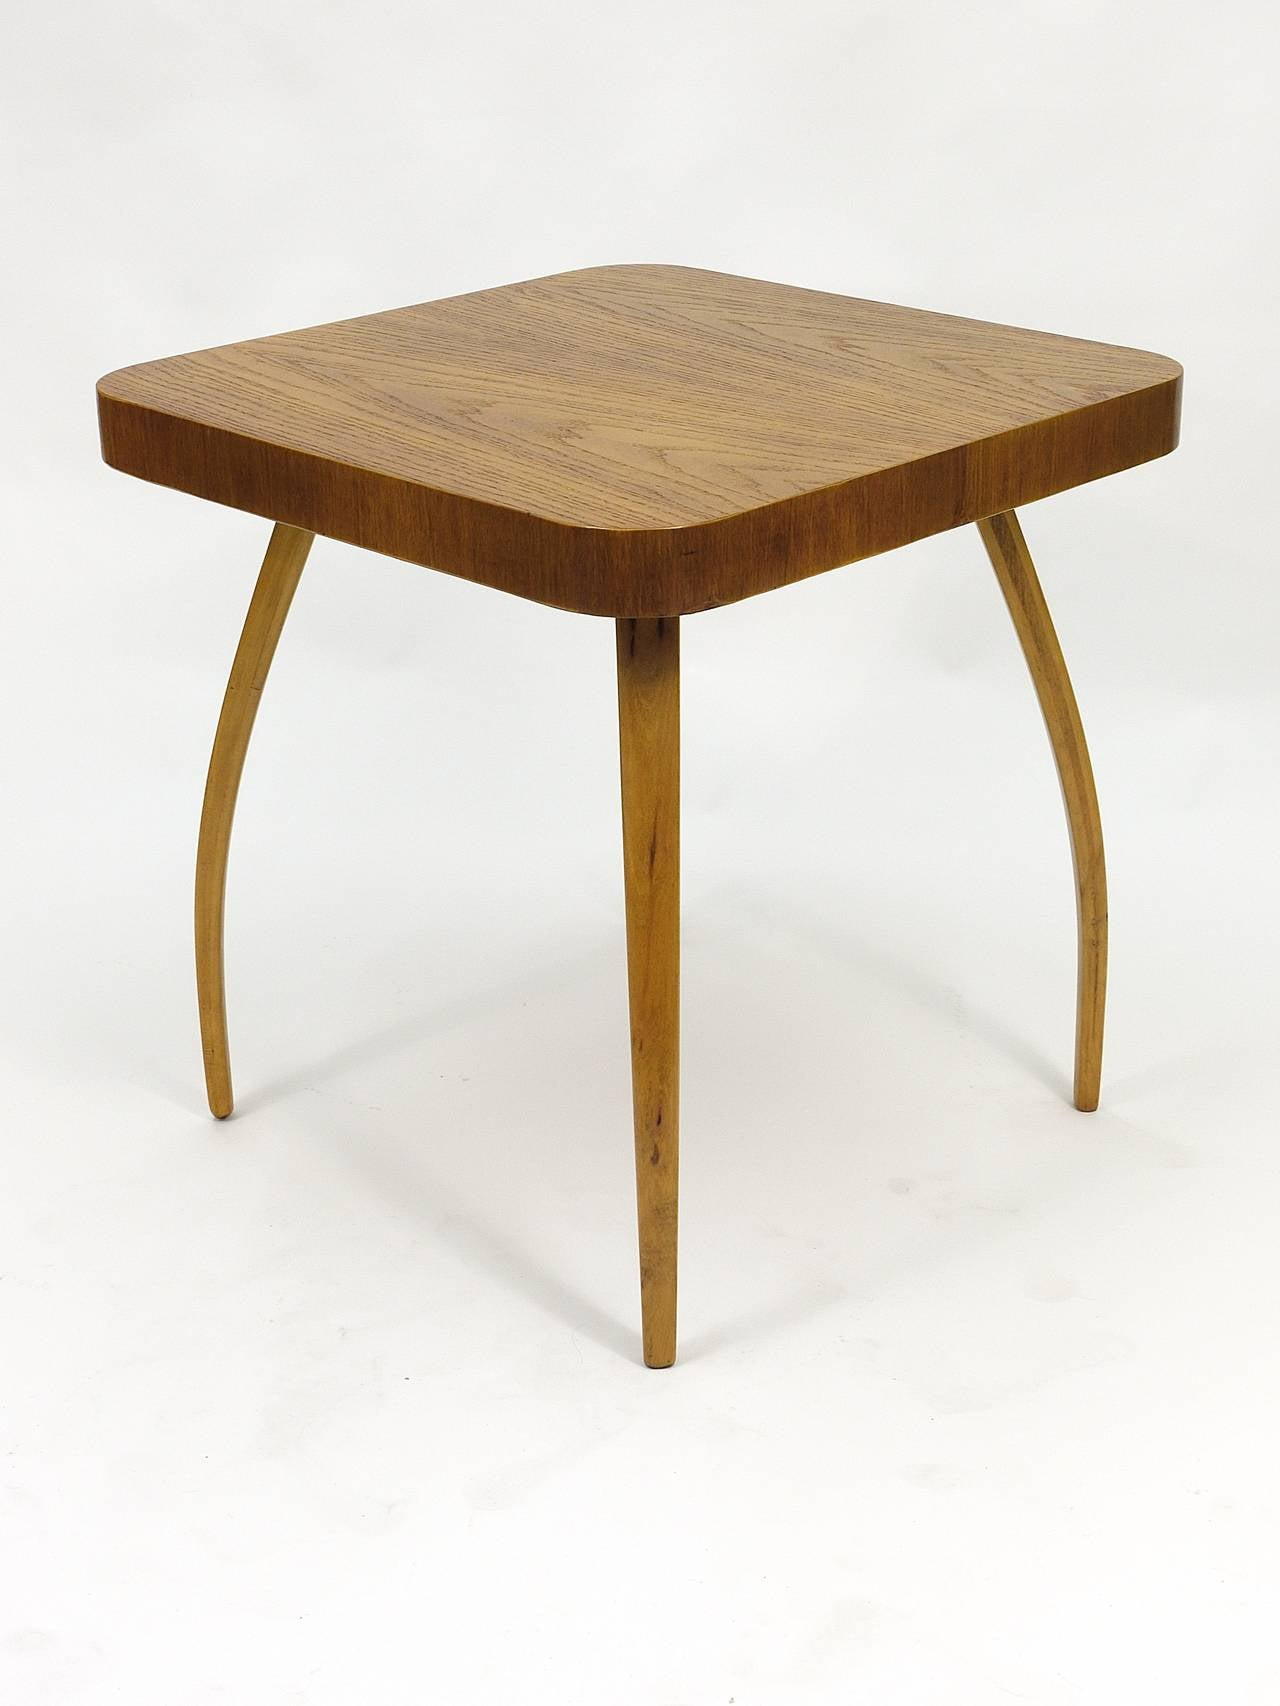 1930s Spider Side Table H259 By Jindrich Halabala Bauhaus Excellent Condition For Sale At 1stdibs